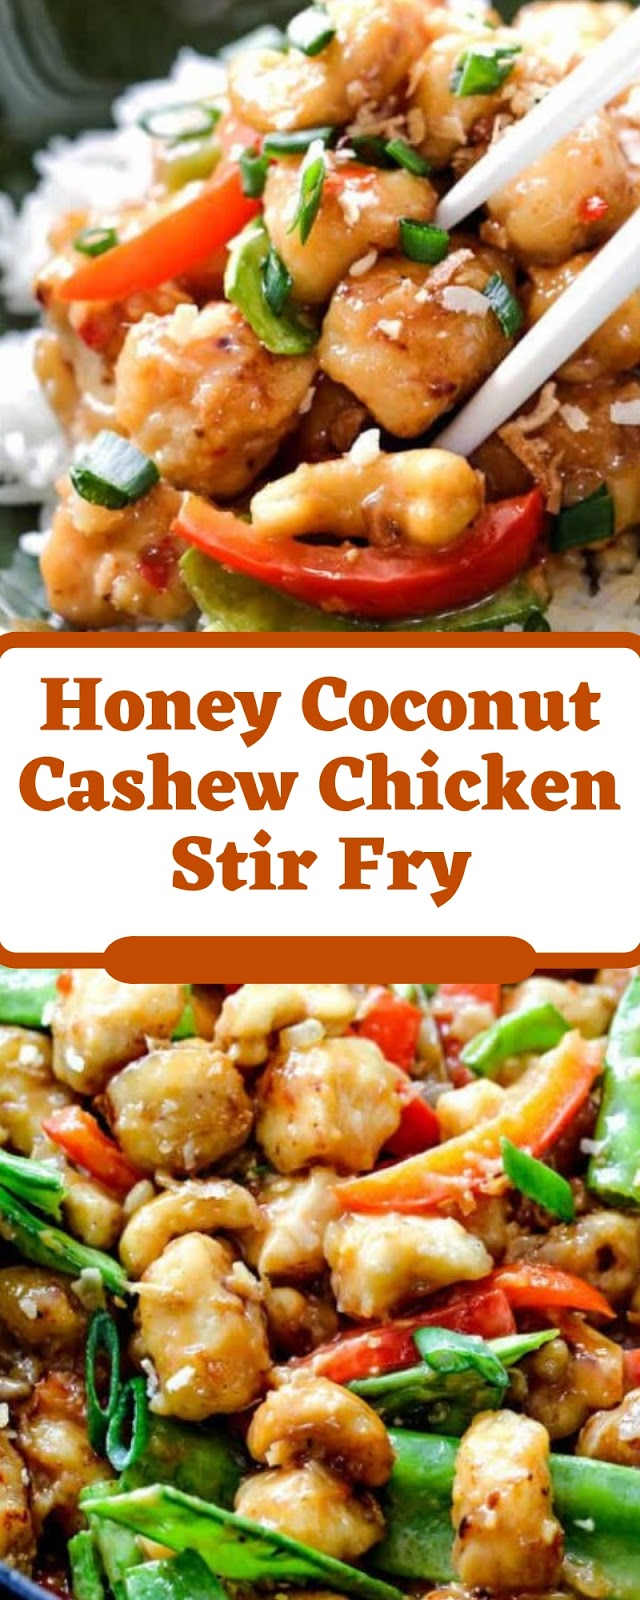 Honey Coconut Cashew Chicken Stir Fry